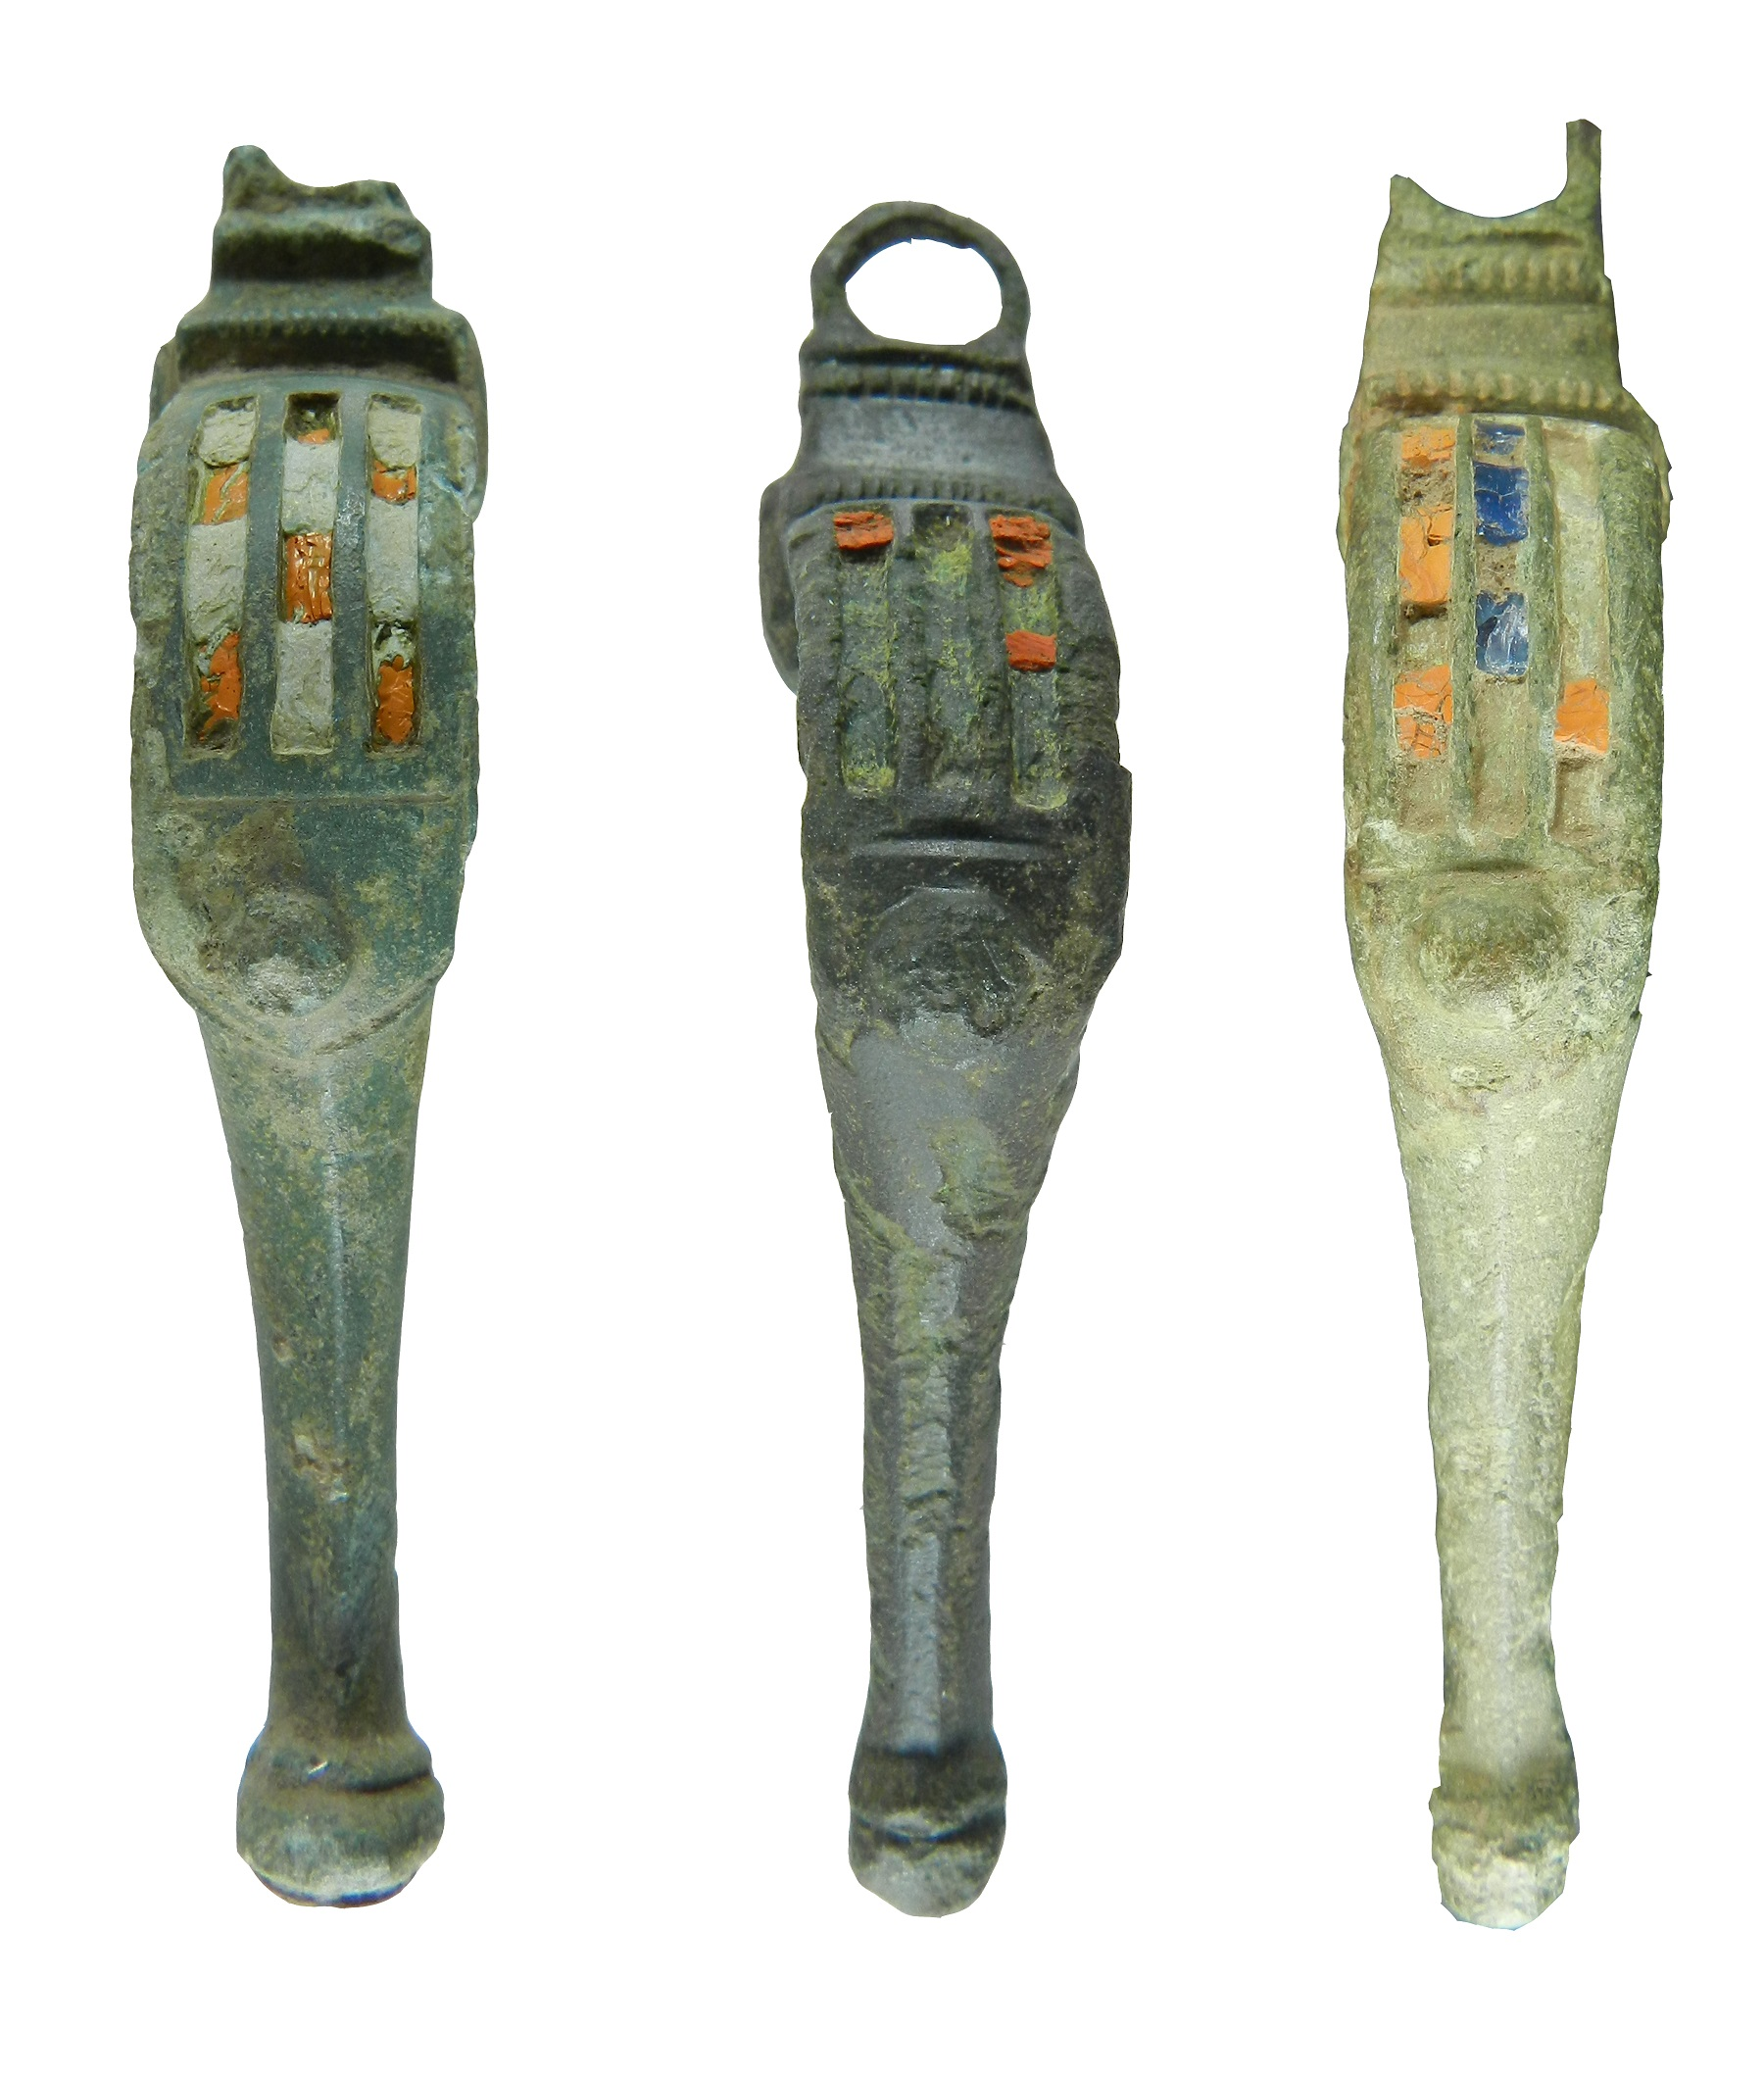 Three Wirral brooches discovered in Flintshire